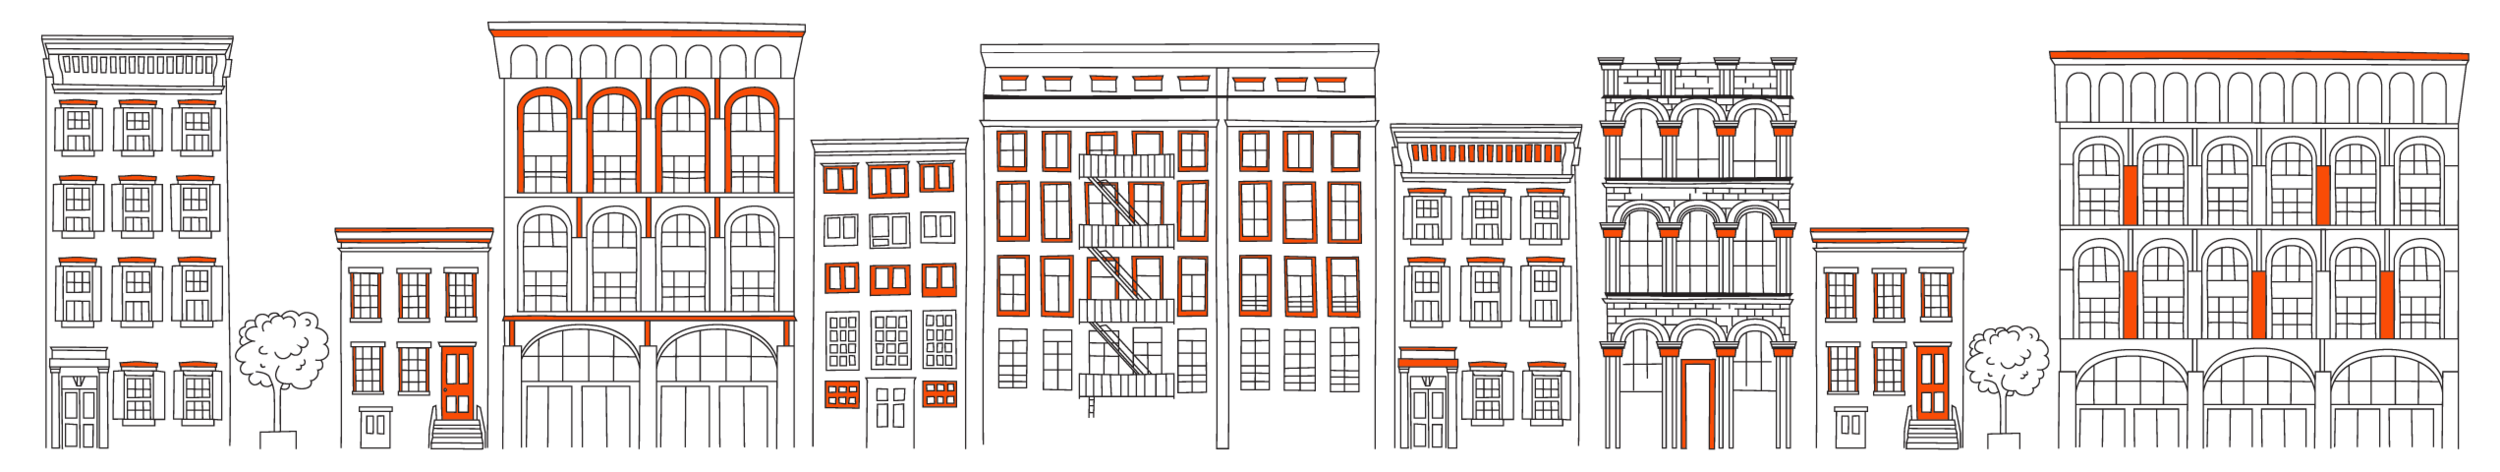 PPS_Buildings_Banner-19.png